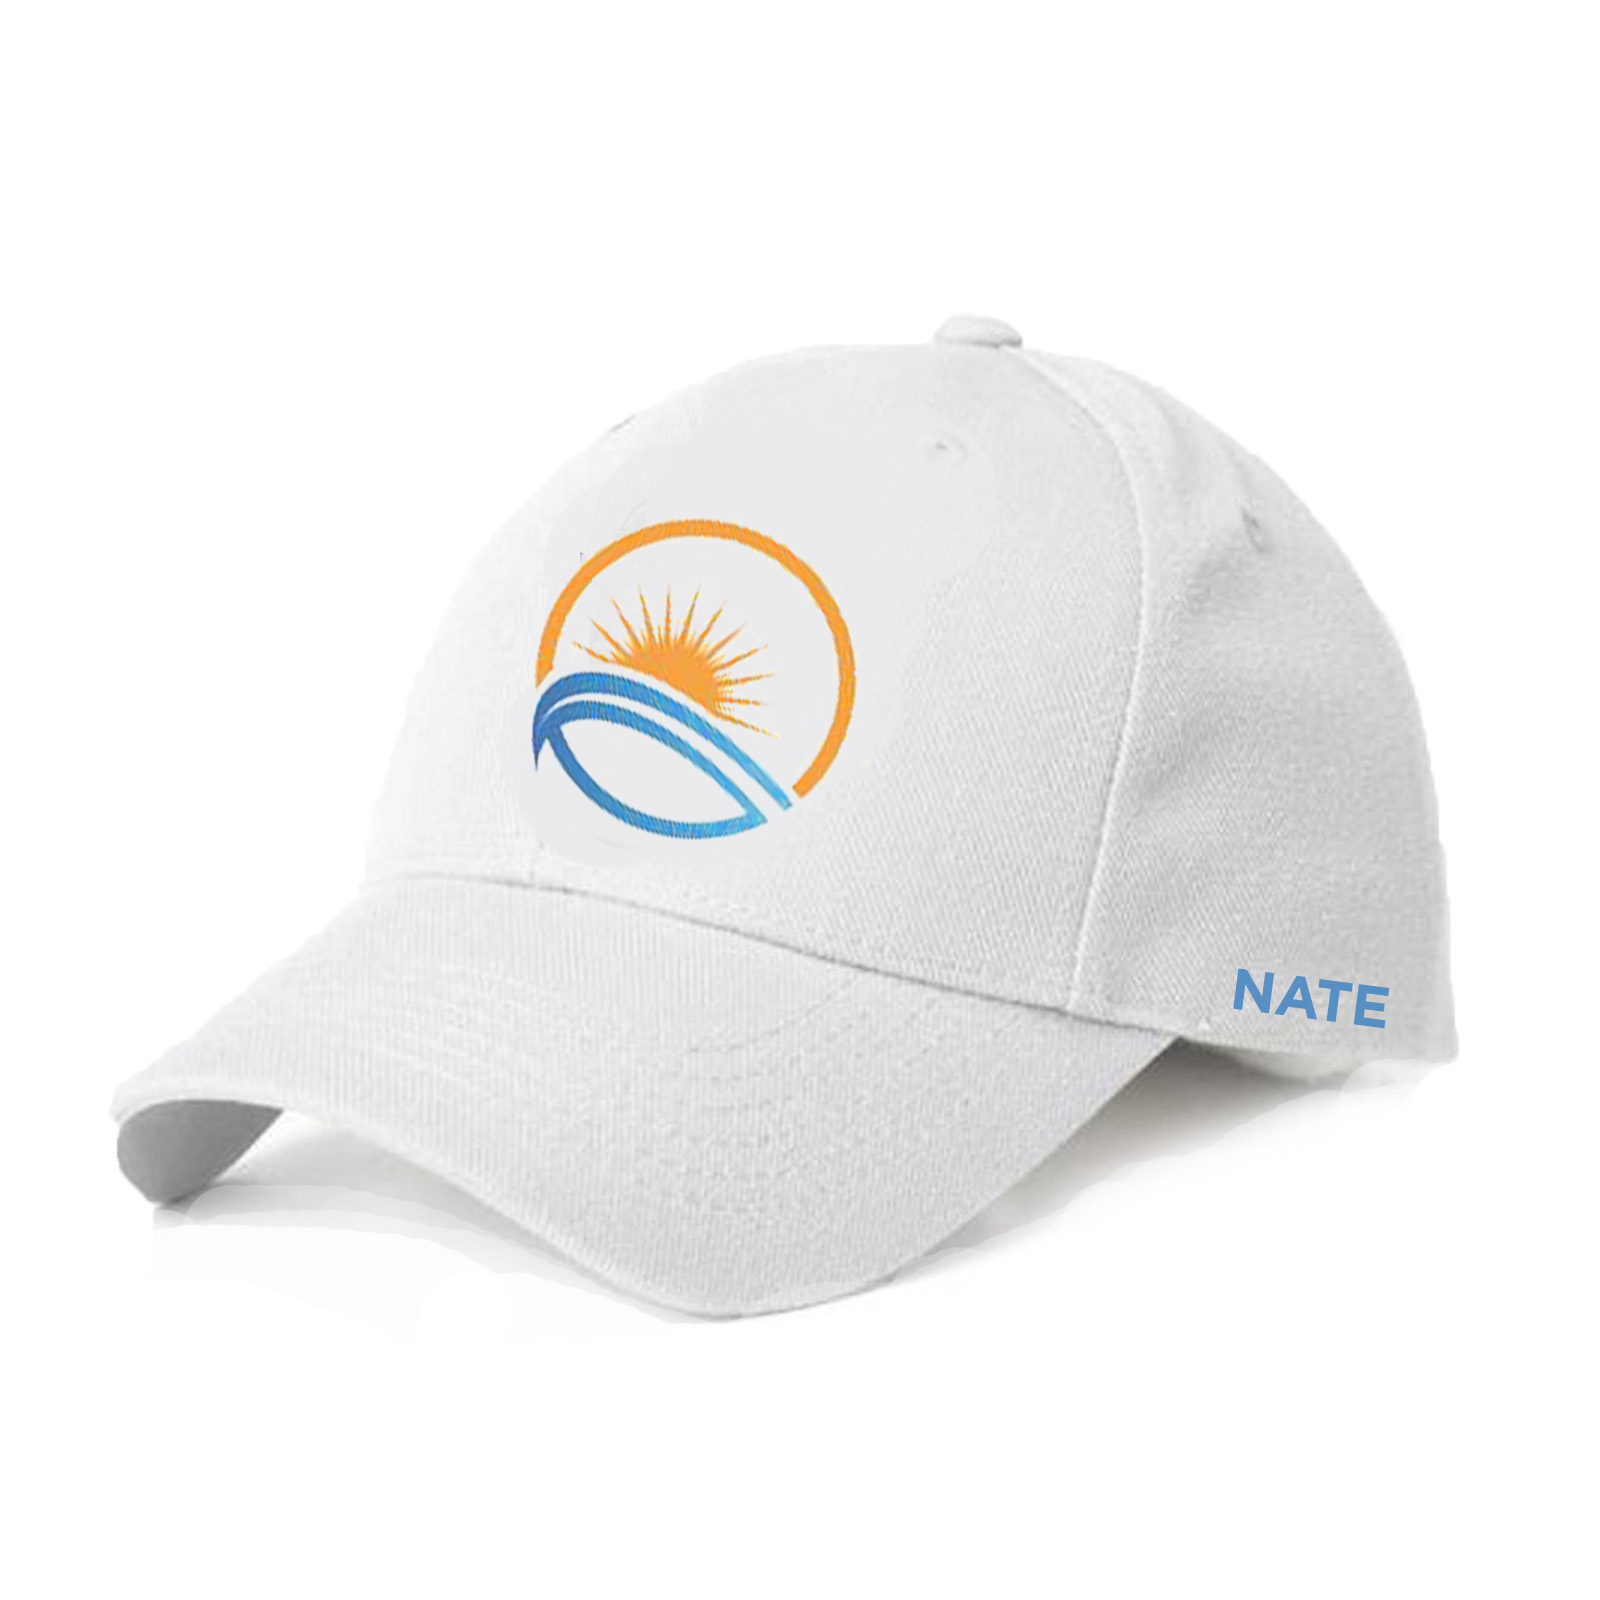 Live Event Printing of a hat.